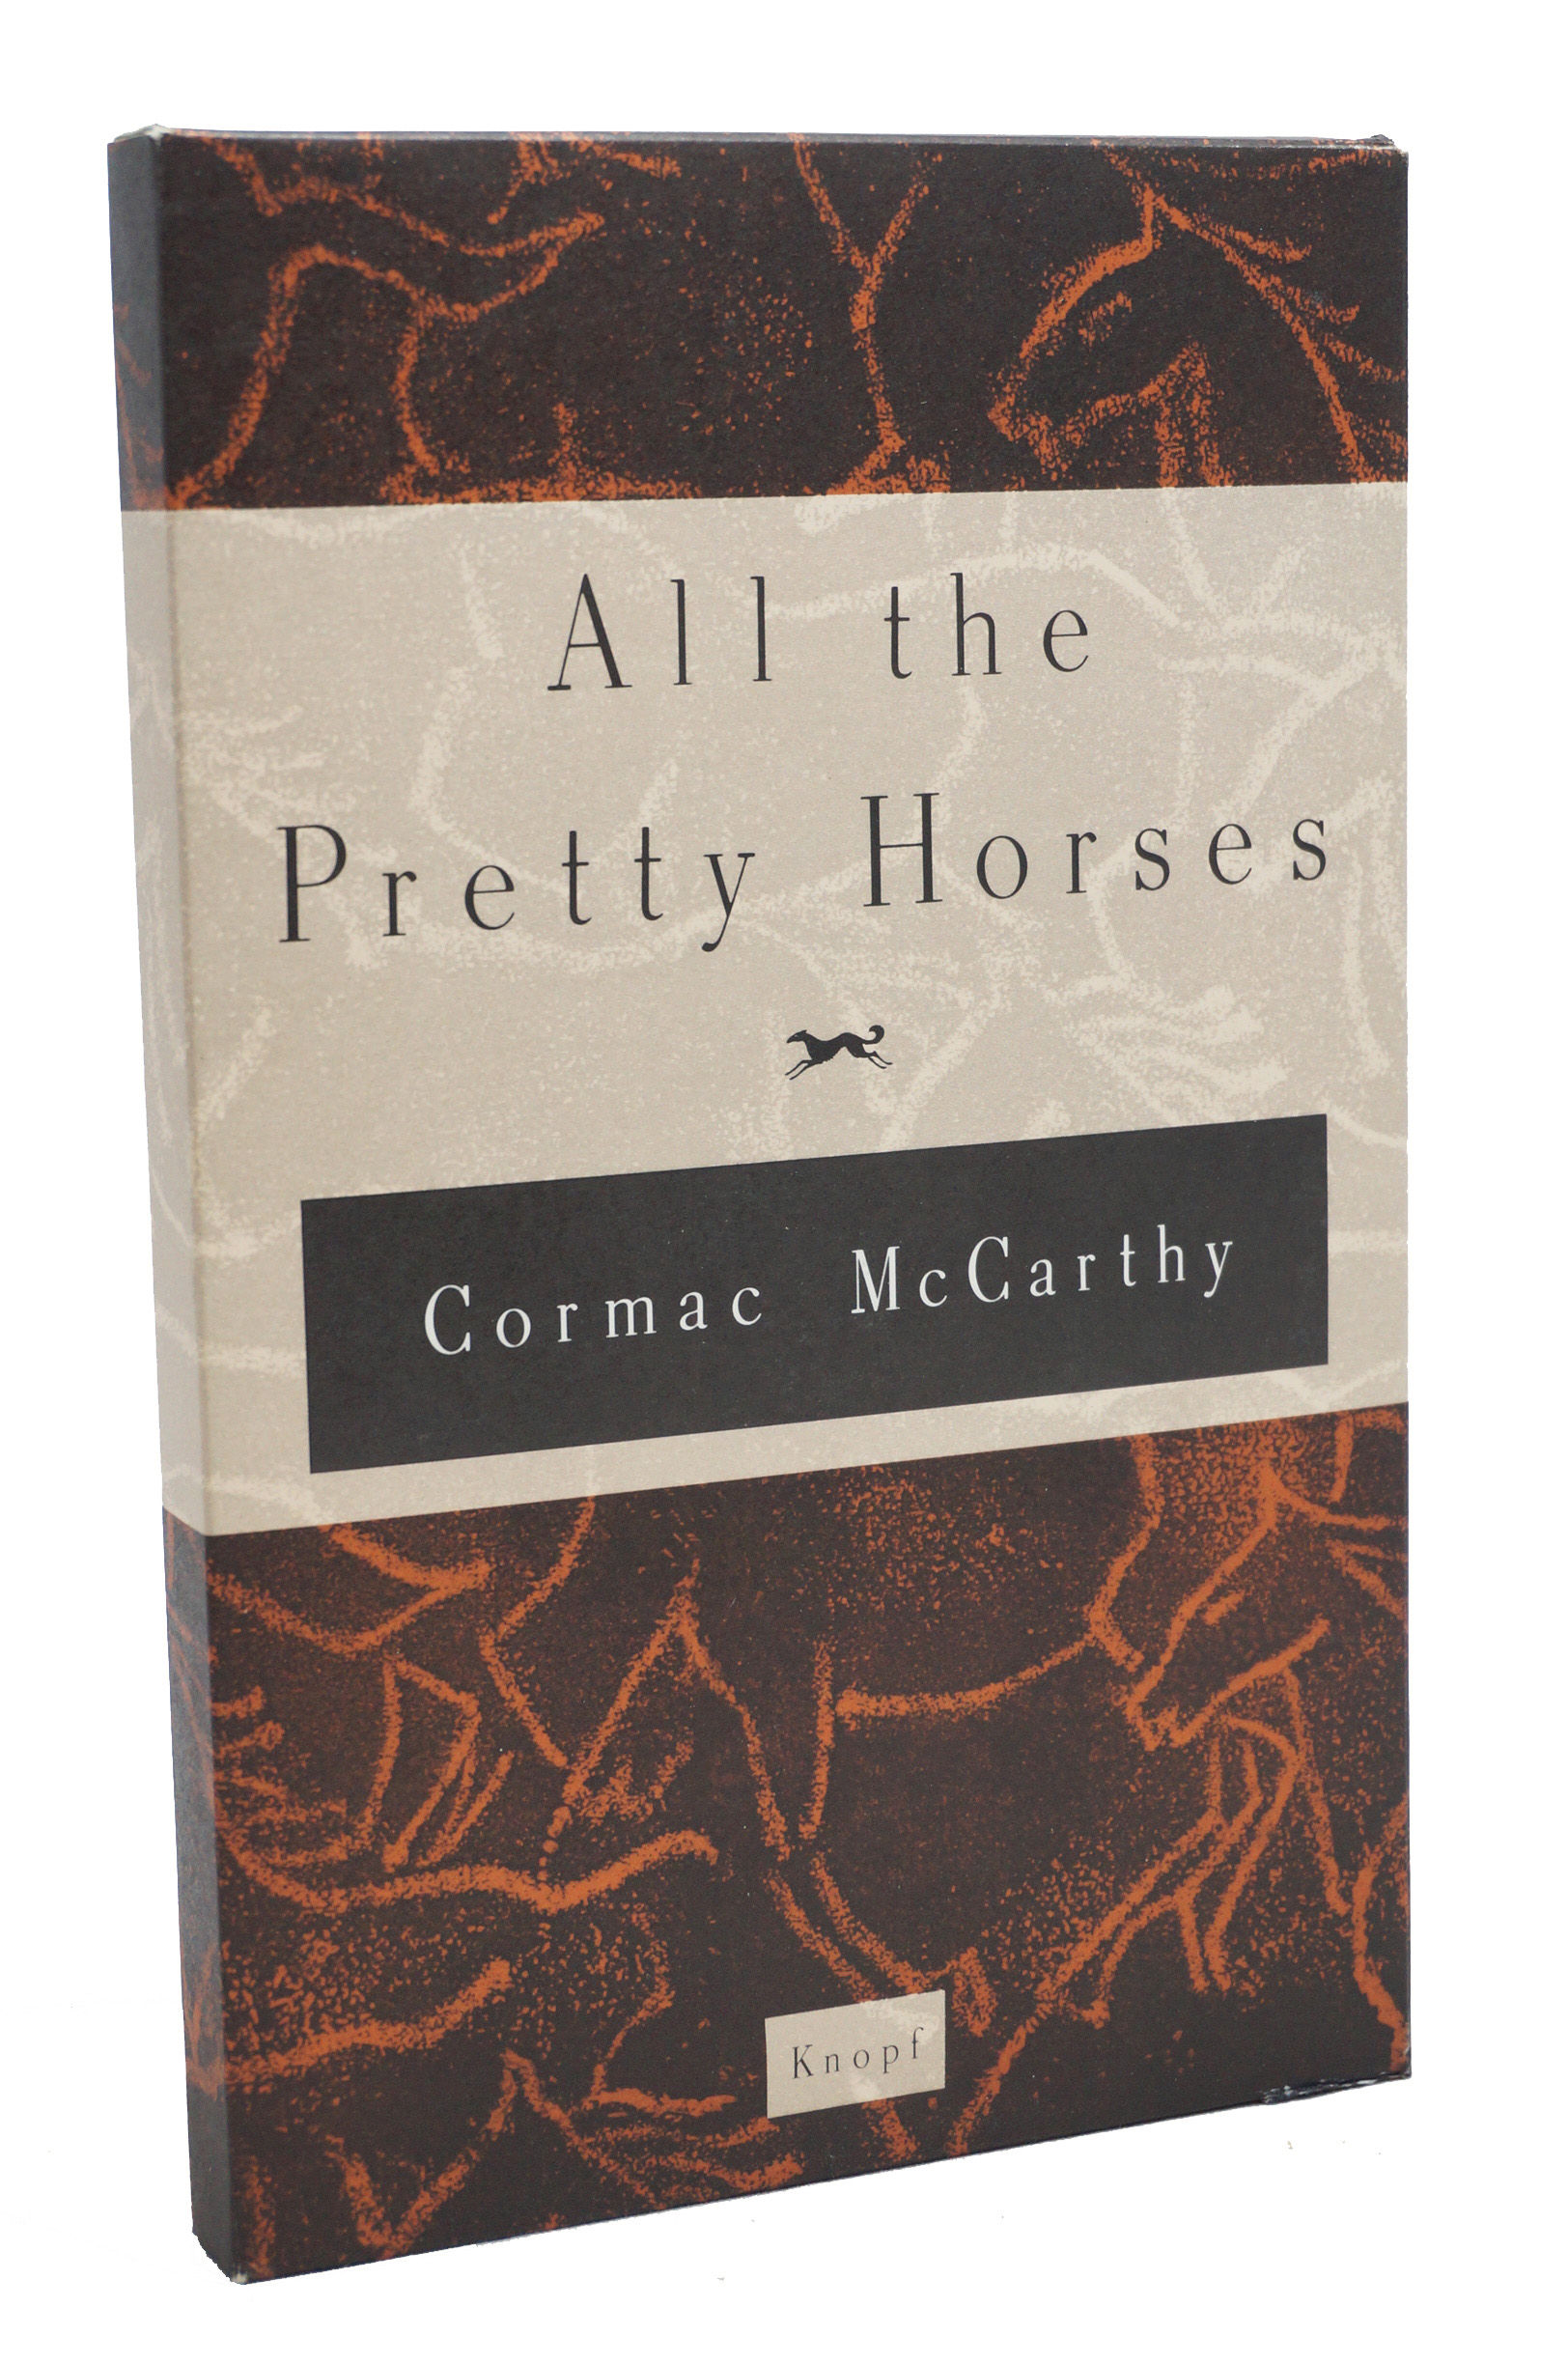 freindship in all the pretty horses Start studying all the pretty horses by cormac mccarthy learn vocabulary, terms, and more with flashcards, games, and other study tools.